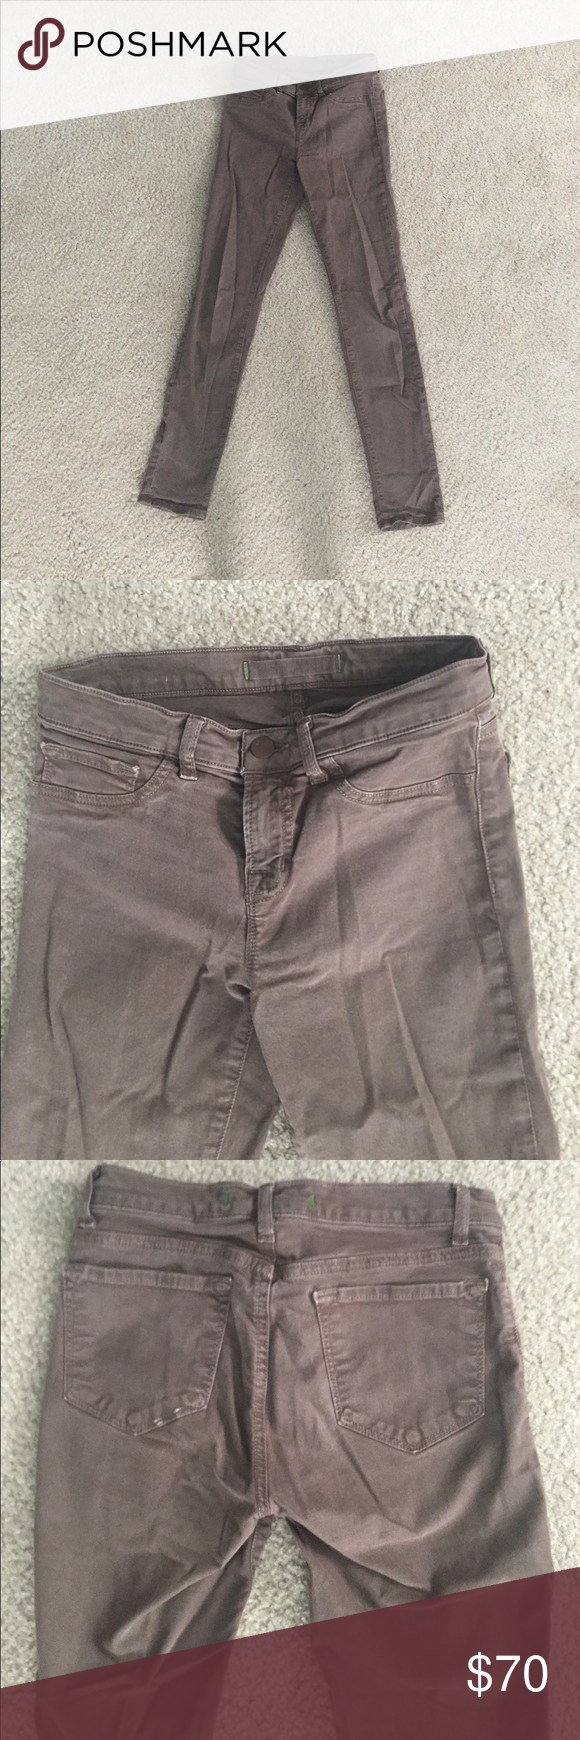 J Brand size 25 brown skinny jeans Good condition size 25 J Brand brown skinny jeans J Brand Jeans Skinny